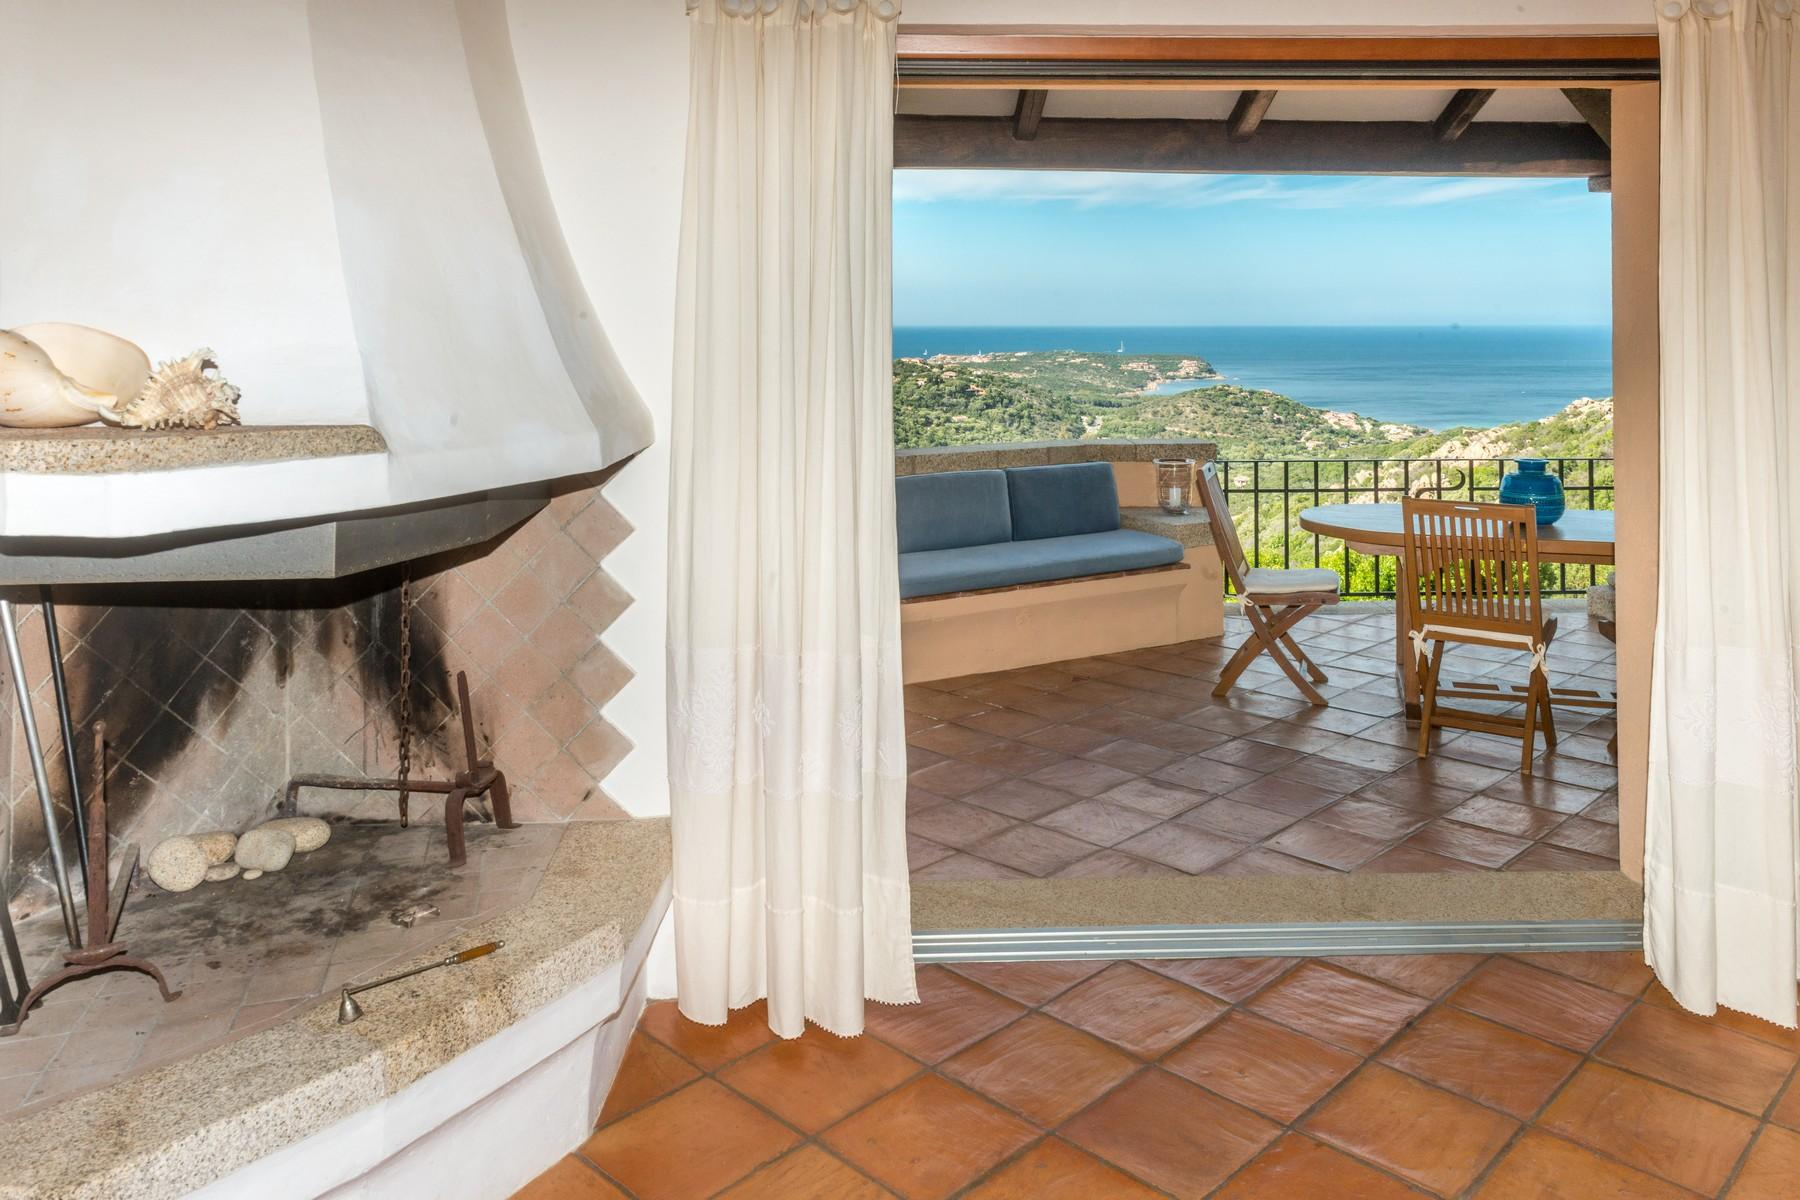 Porto Cervo Abbiadori Beautiful semi-detached villa with sea view - 4